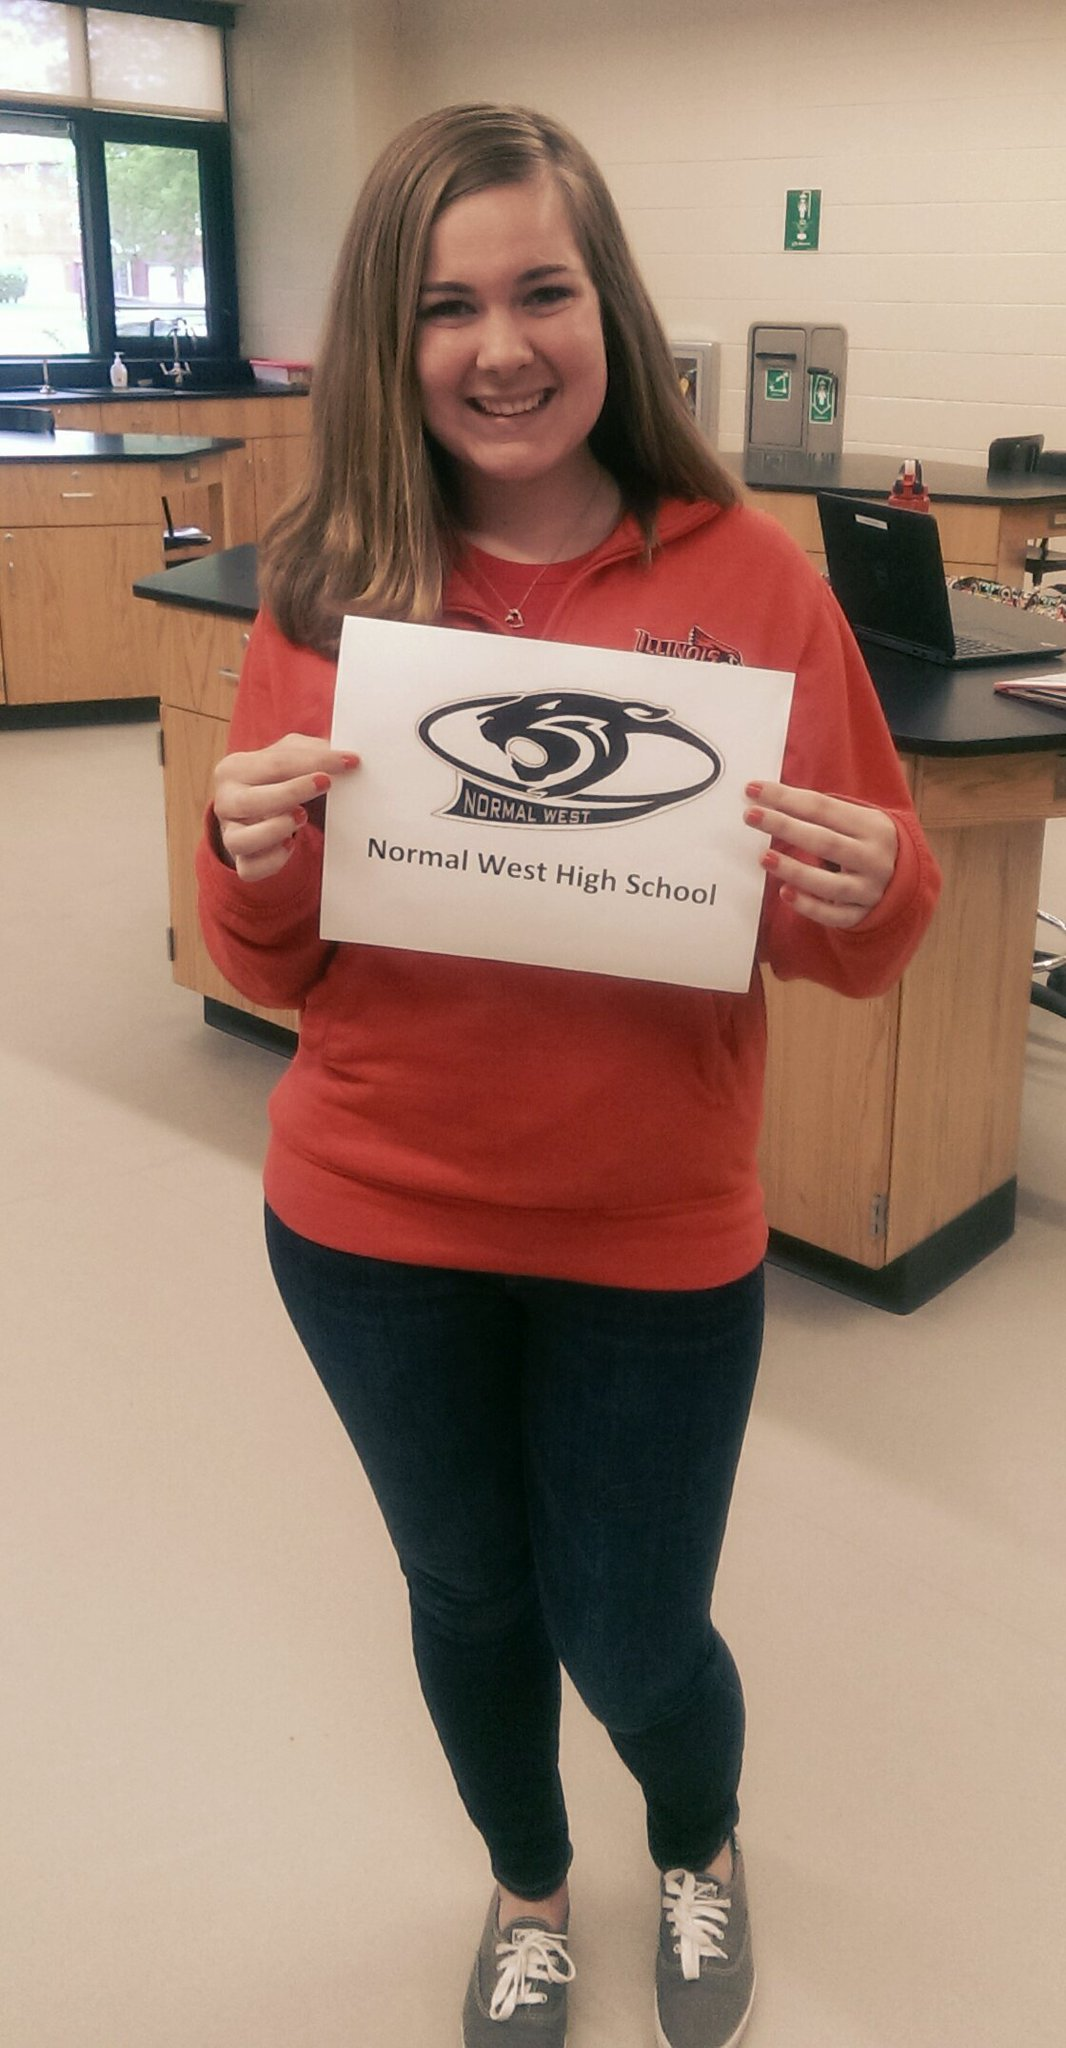 Look who just #gothired. Preview Guide Zuzi officially accepted a job offer to teach biology @NormalWestHigh #StateYourCareer  Congrats! https://t.co/1kedjnJWv1